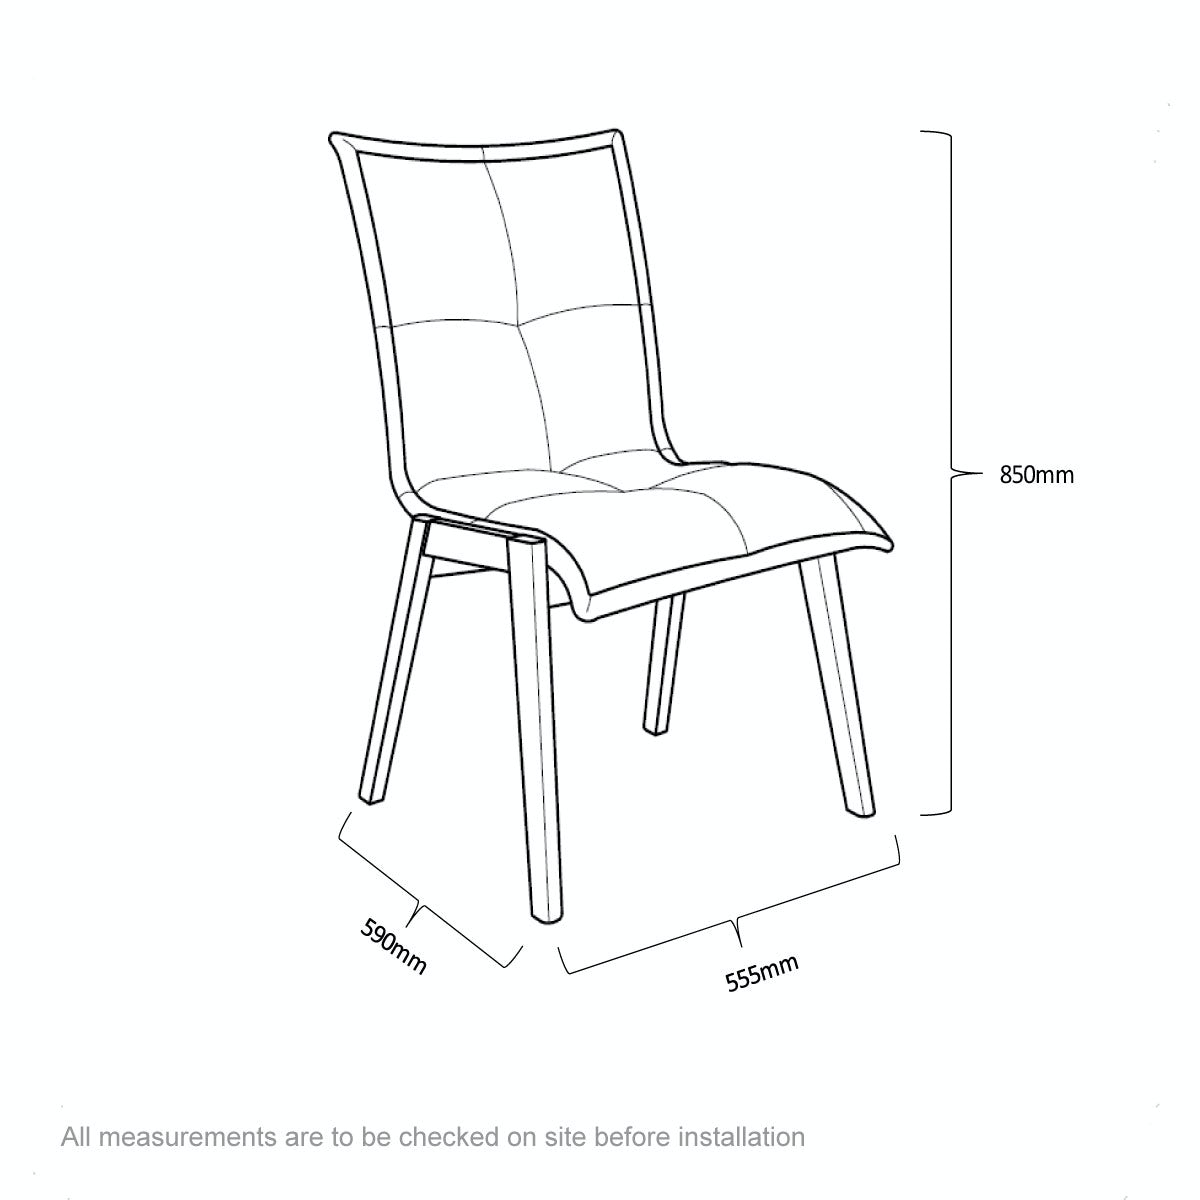 Dimensions for Hadley walnut and light cyan pair of dining chairs